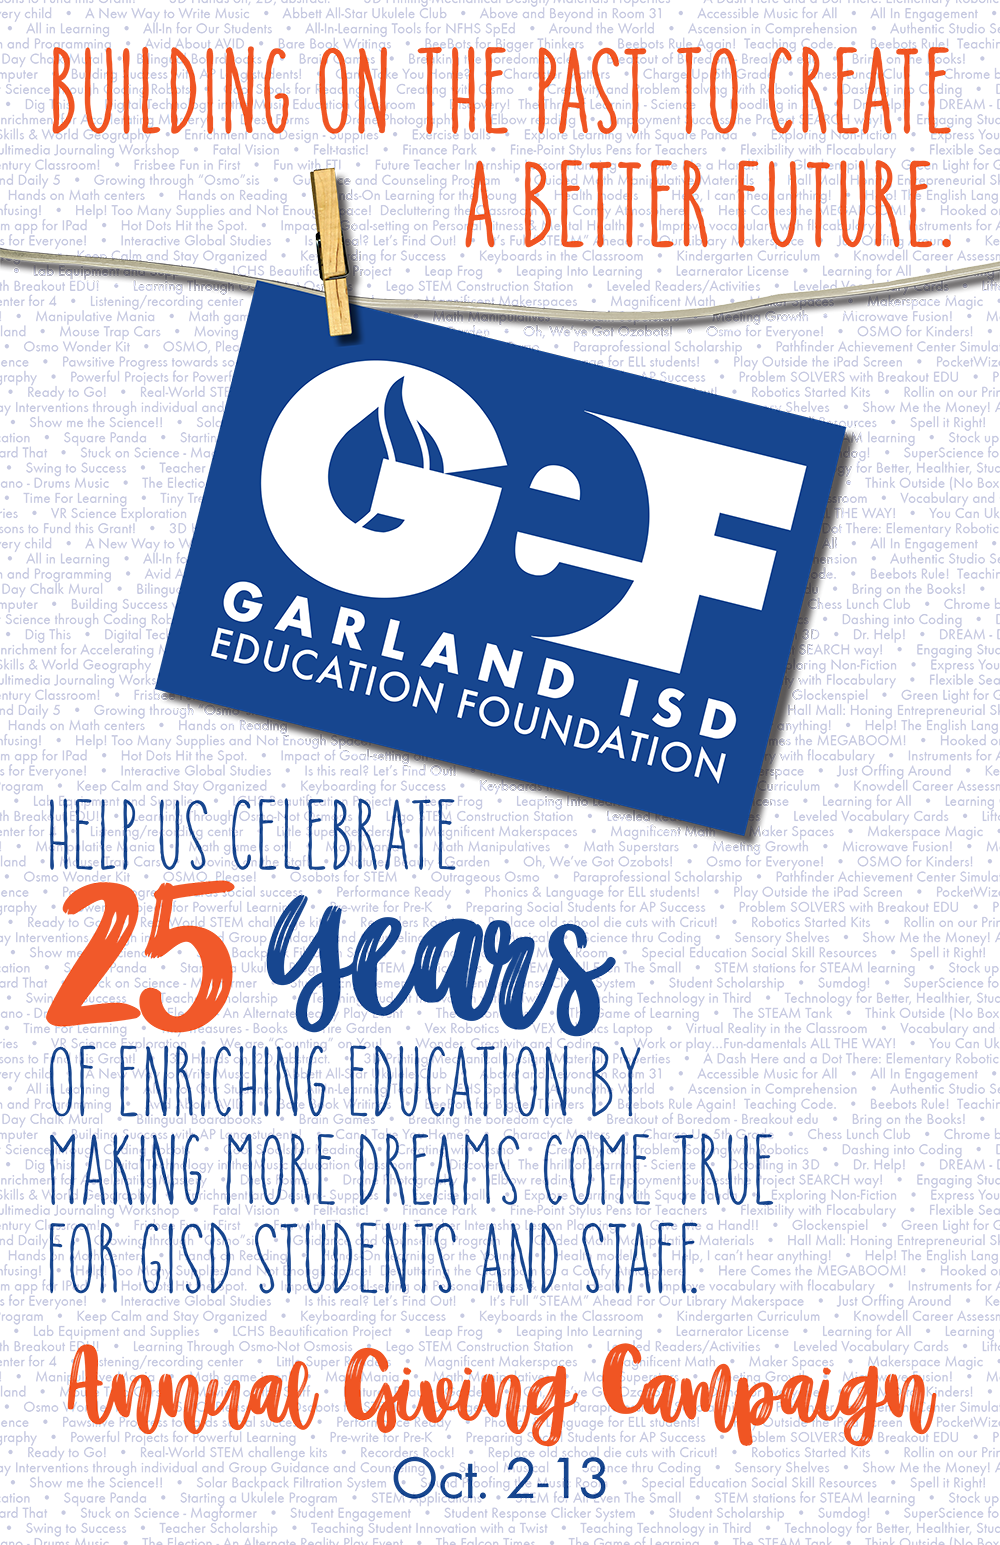 Help us celebrate 25 years of enriching education by making more dreams come true for GISD students and staff. The annual giving campaign runs from Oct. 2 - 13.